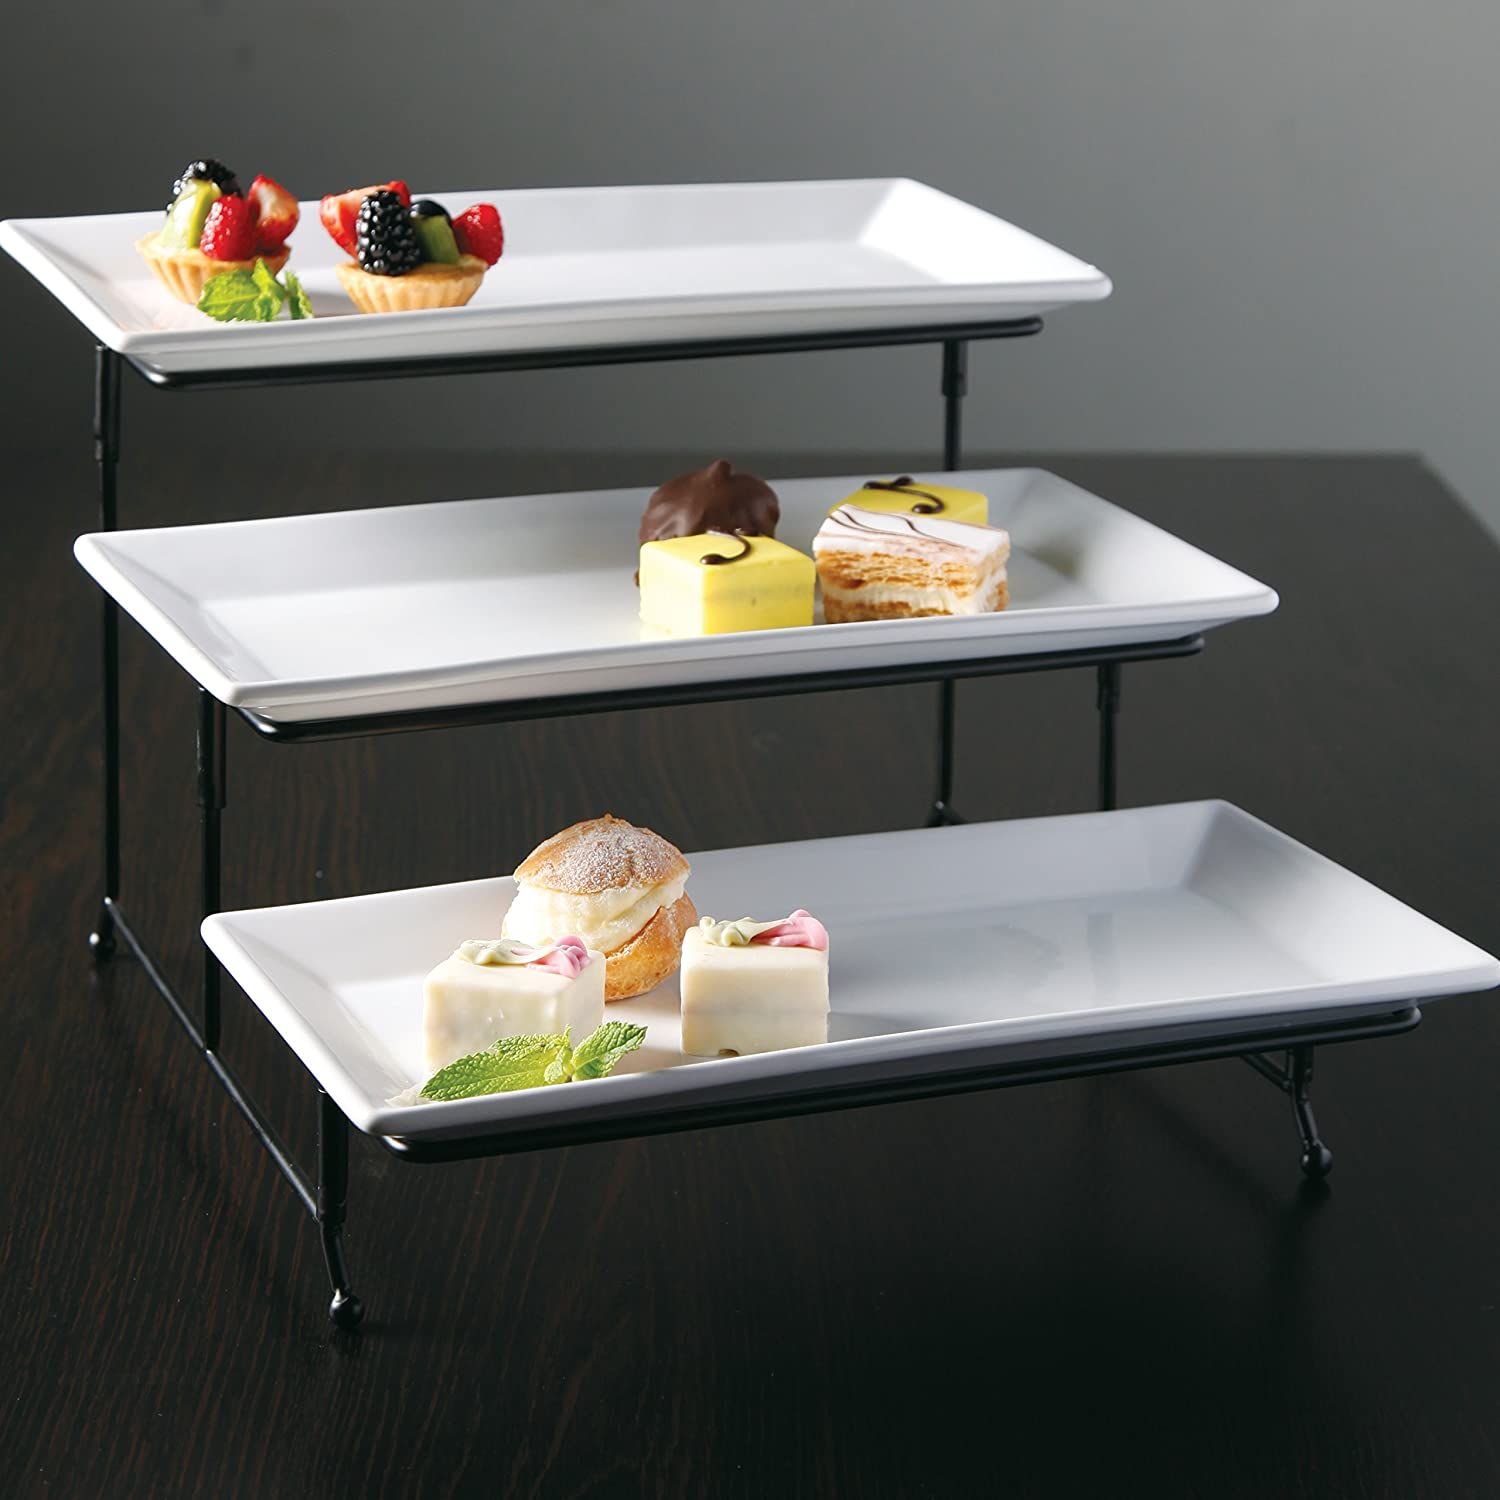 Brand-new Amazon.com: Gibson Gracious Dining Three Tier Rectangle Plate Set  GQ29